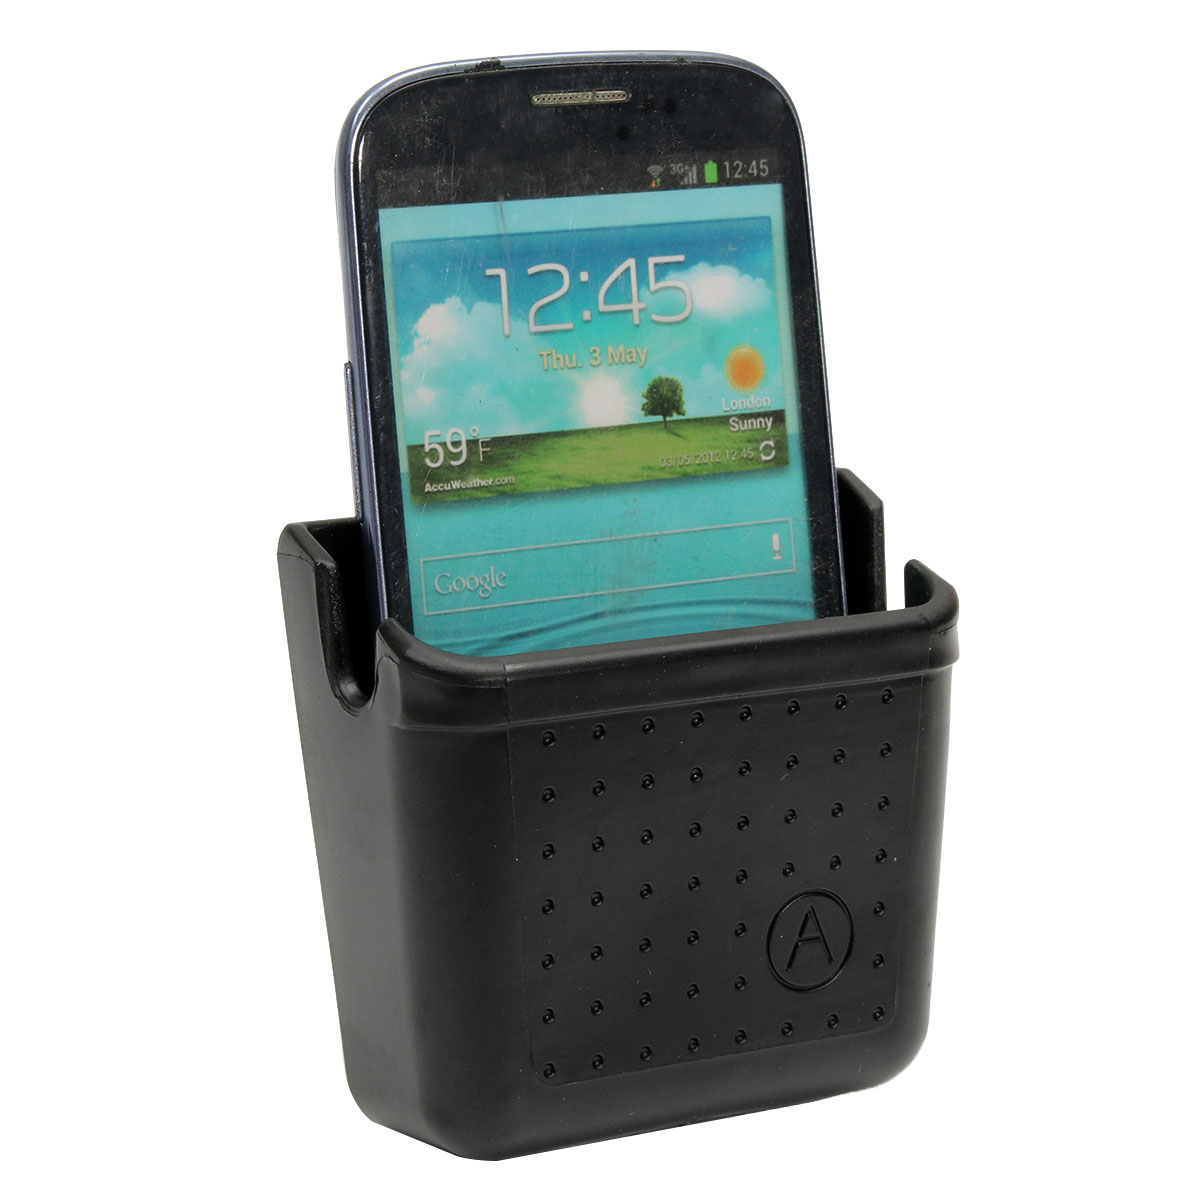 Car Auto Phone Charge Box Universal Storage Pouch Bag Mobile Bluetooth Pylon Multi-use Store Holder Pockets Organizer(China (Mainland))